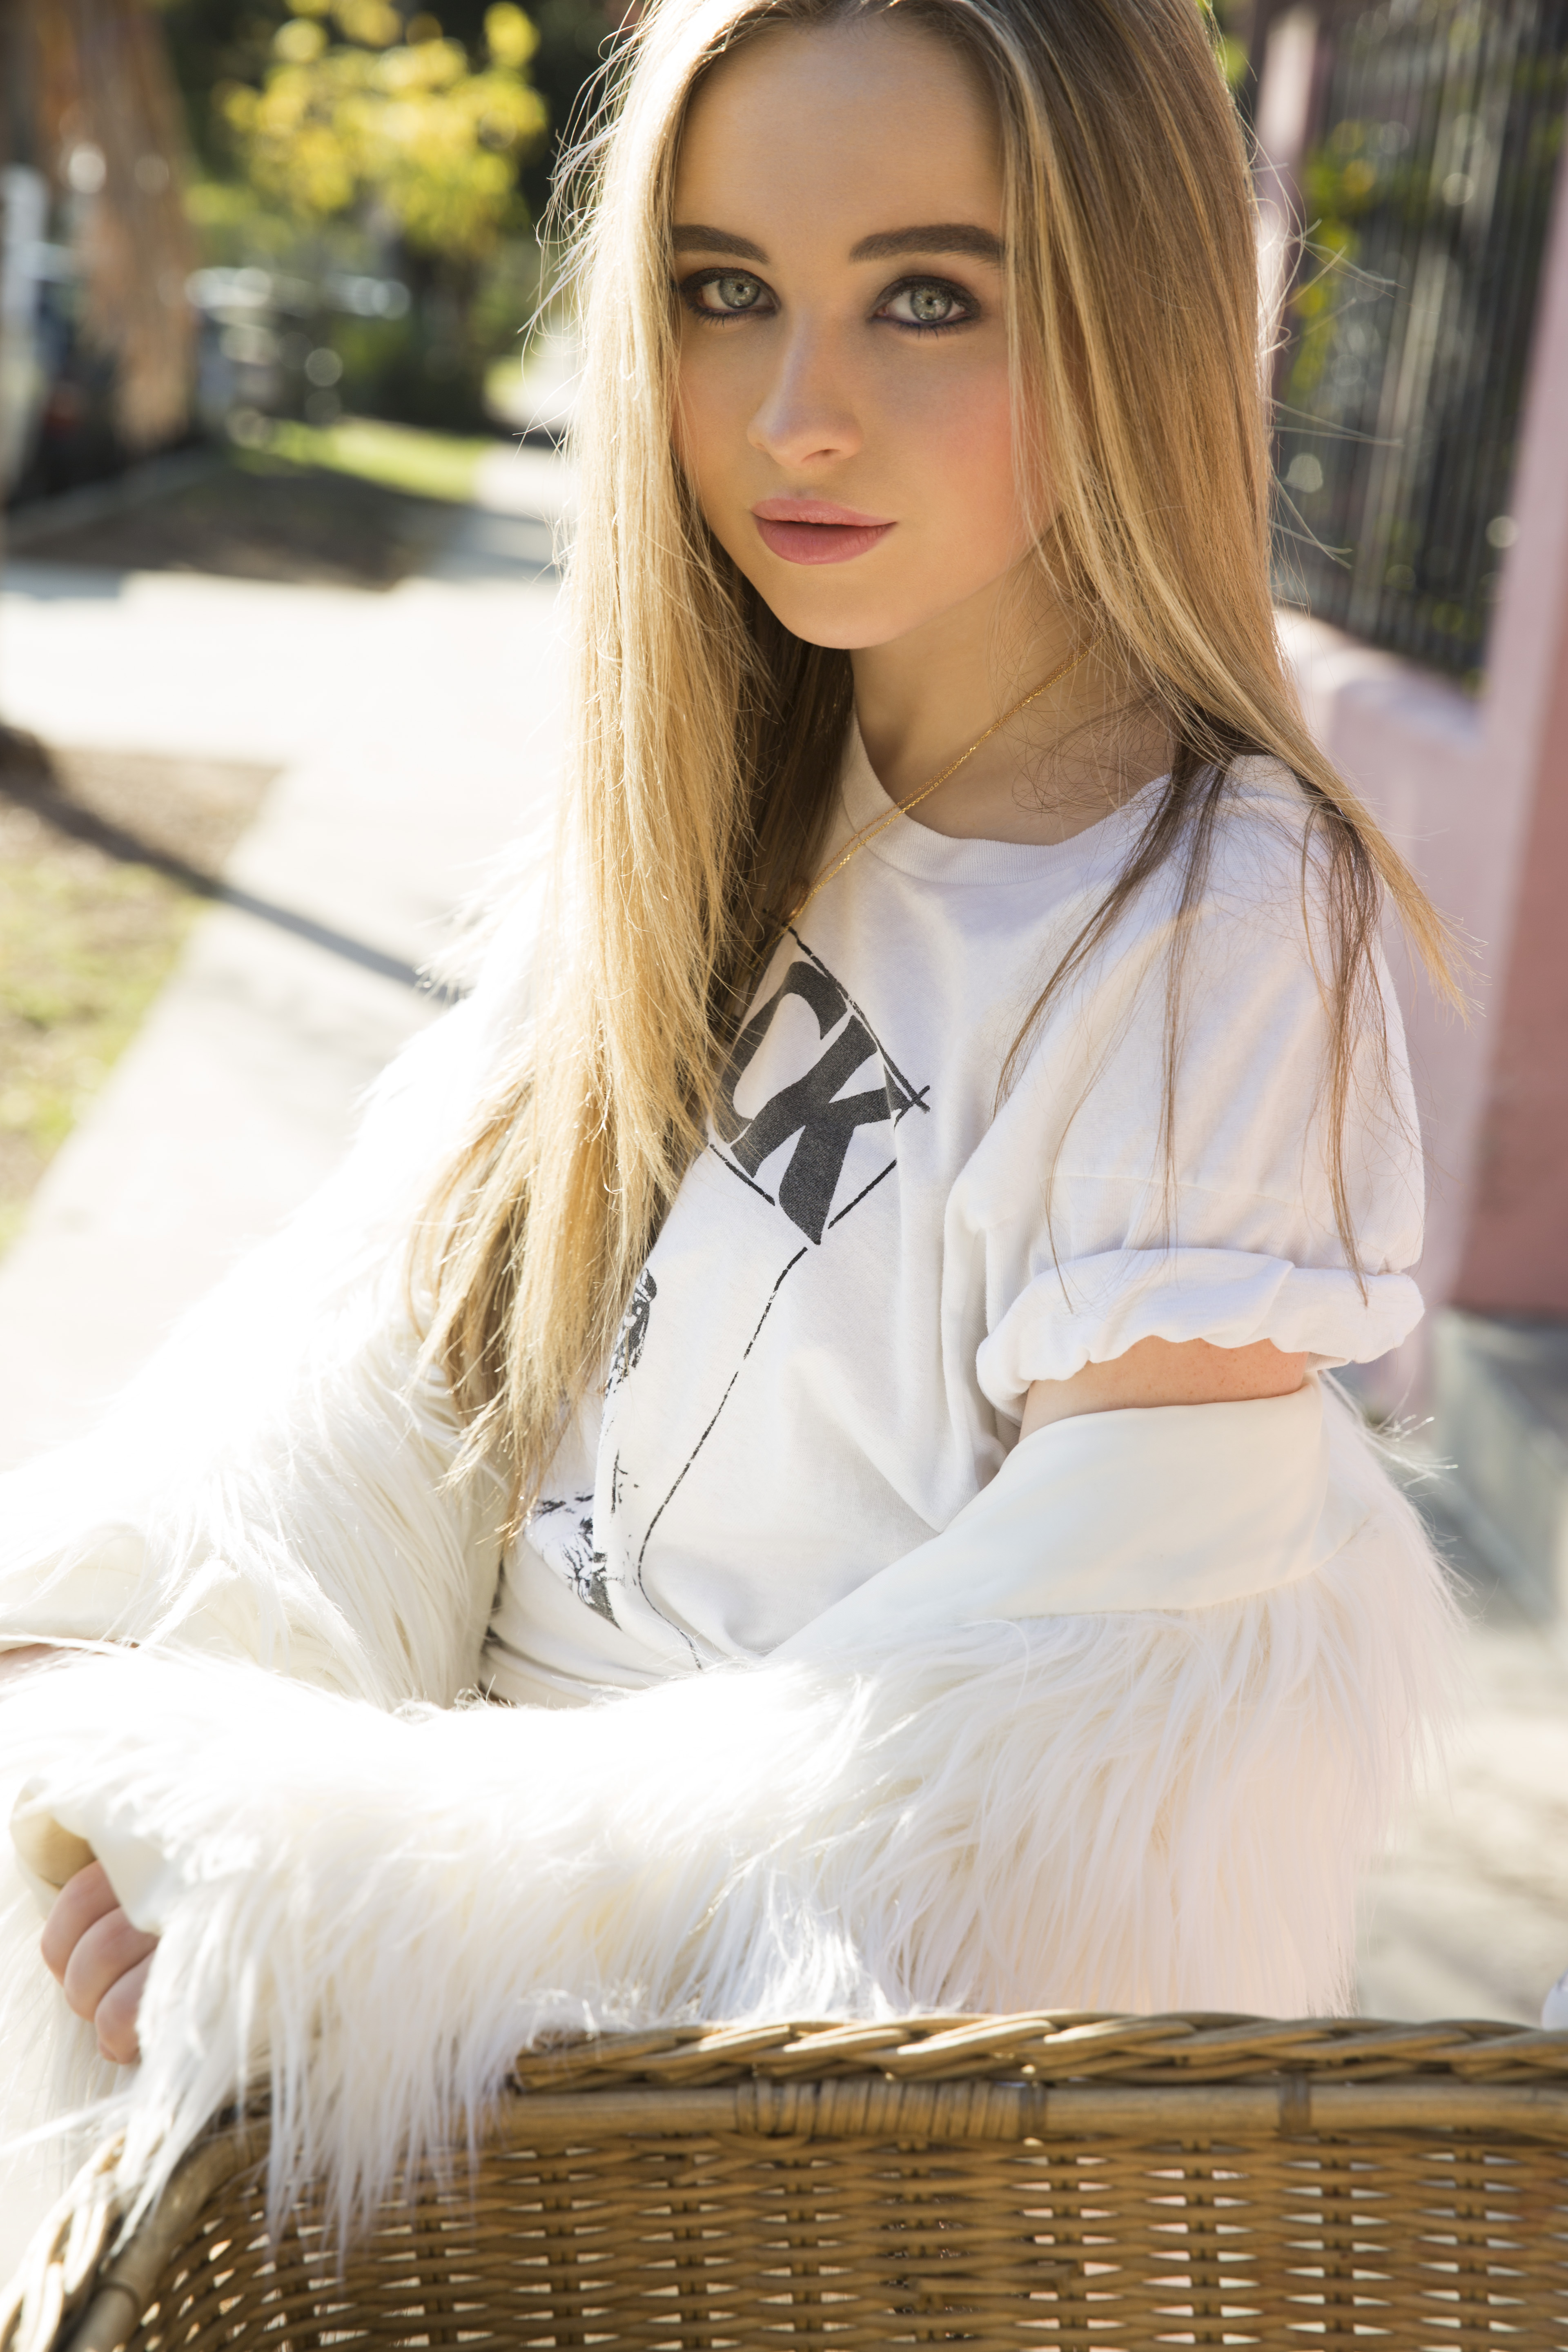 carpenter single girls World, meet girl crystal bell crystalbell 08/27/2015 while it would be easy to label sabrina carpenter as disney channel's new it girl, it's safe to say the happy-go-lucky teen doesn't care.